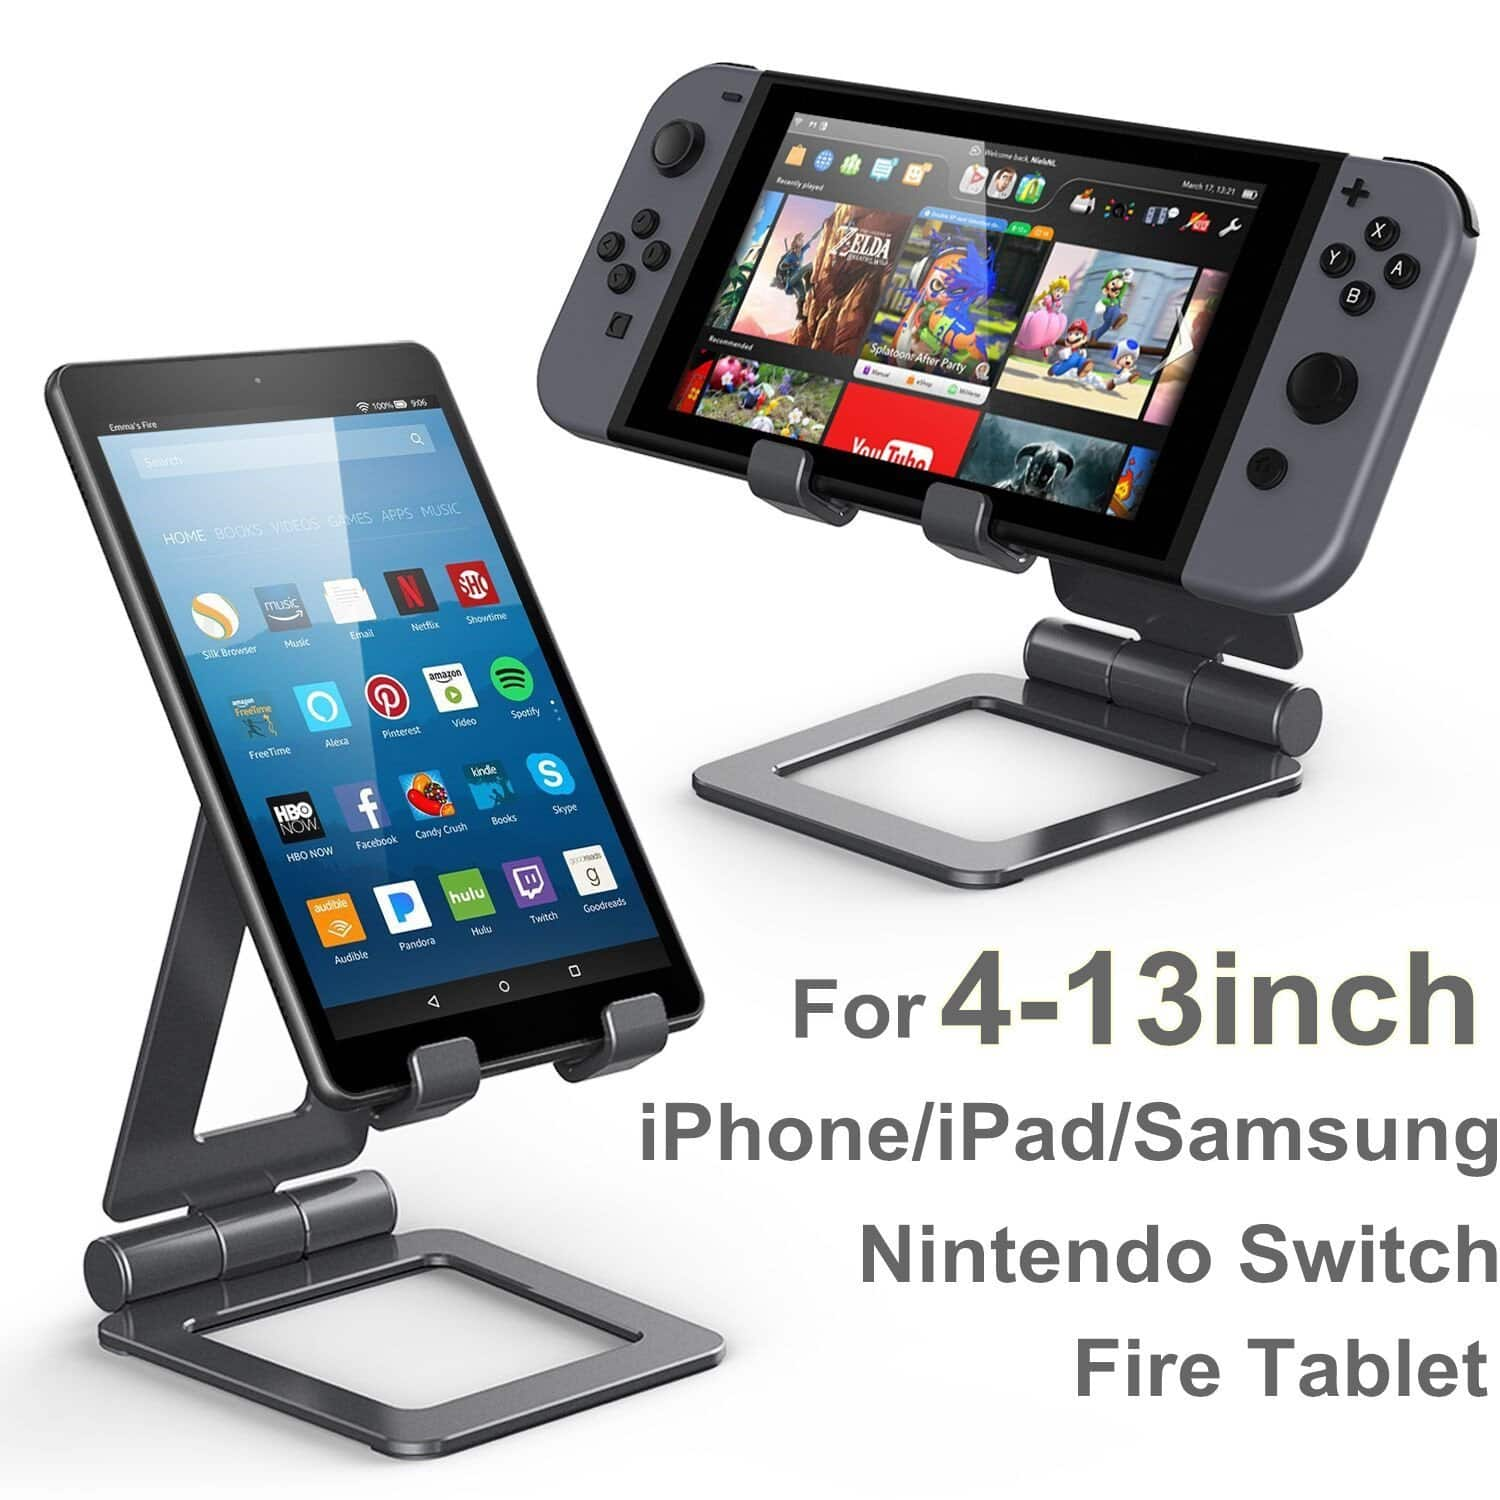 Tablet/Phone Stand - $8.99 @ Amazon. Prime Eligible for FREE Shipping